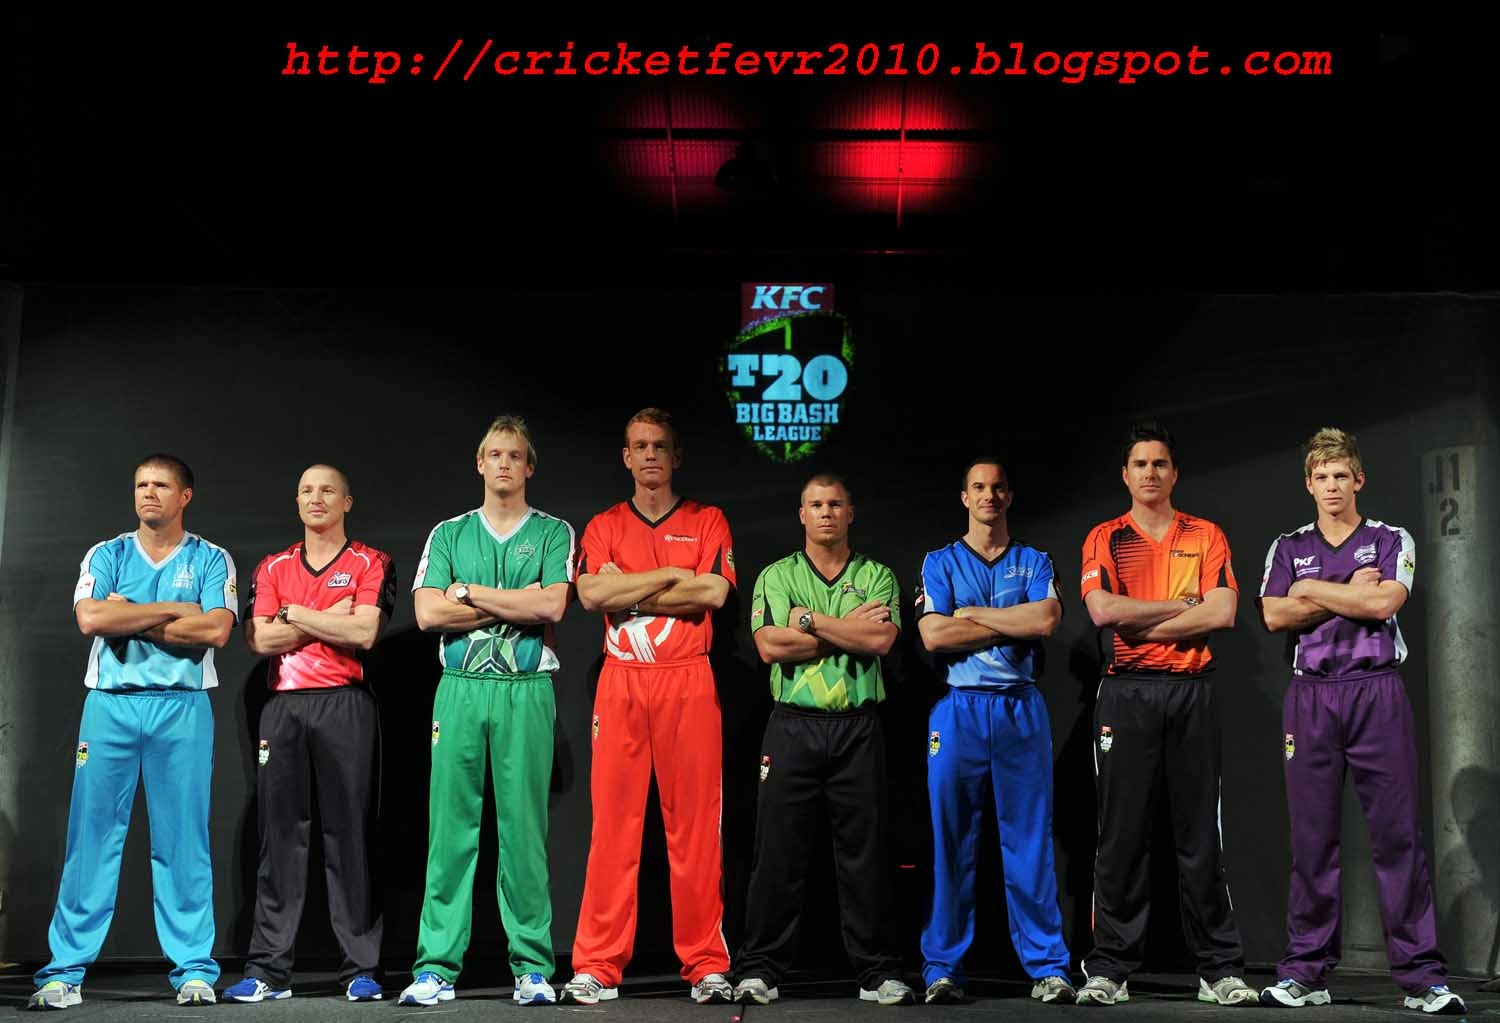 Big Bash League 1st, 2nd Semi Final Match Live Score, Highlights 2014